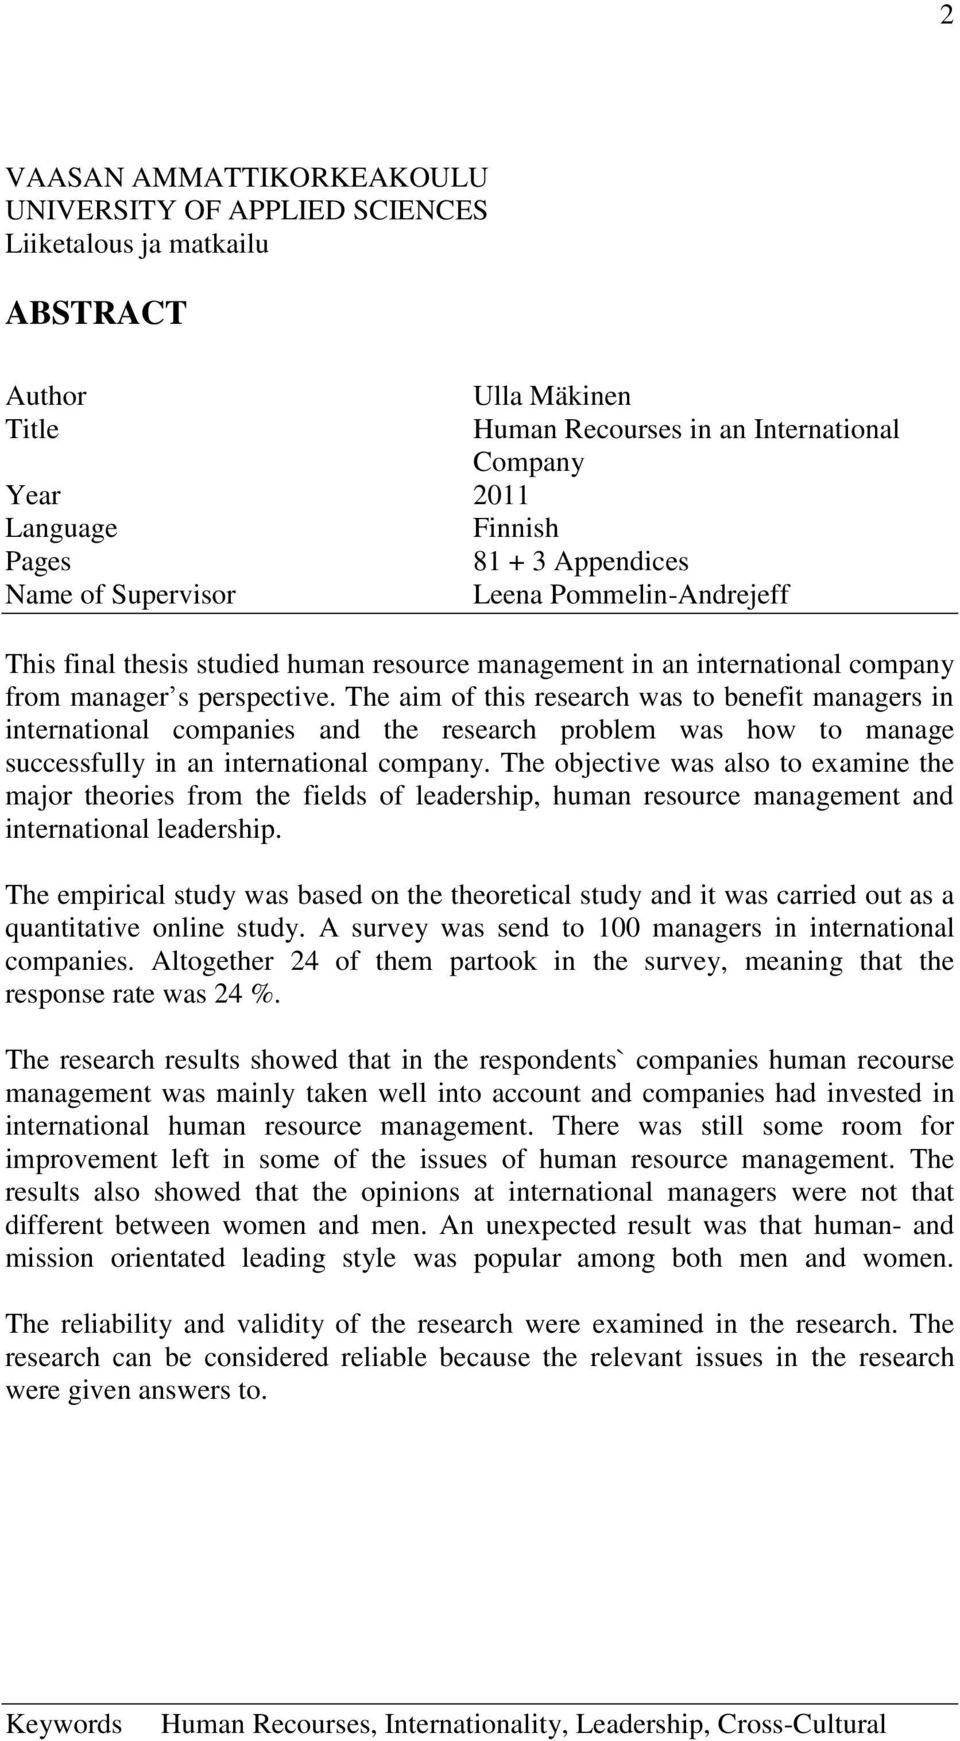 The aim of this research was to benefit managers in international companies and the research problem was how to manage successfully in an international company.